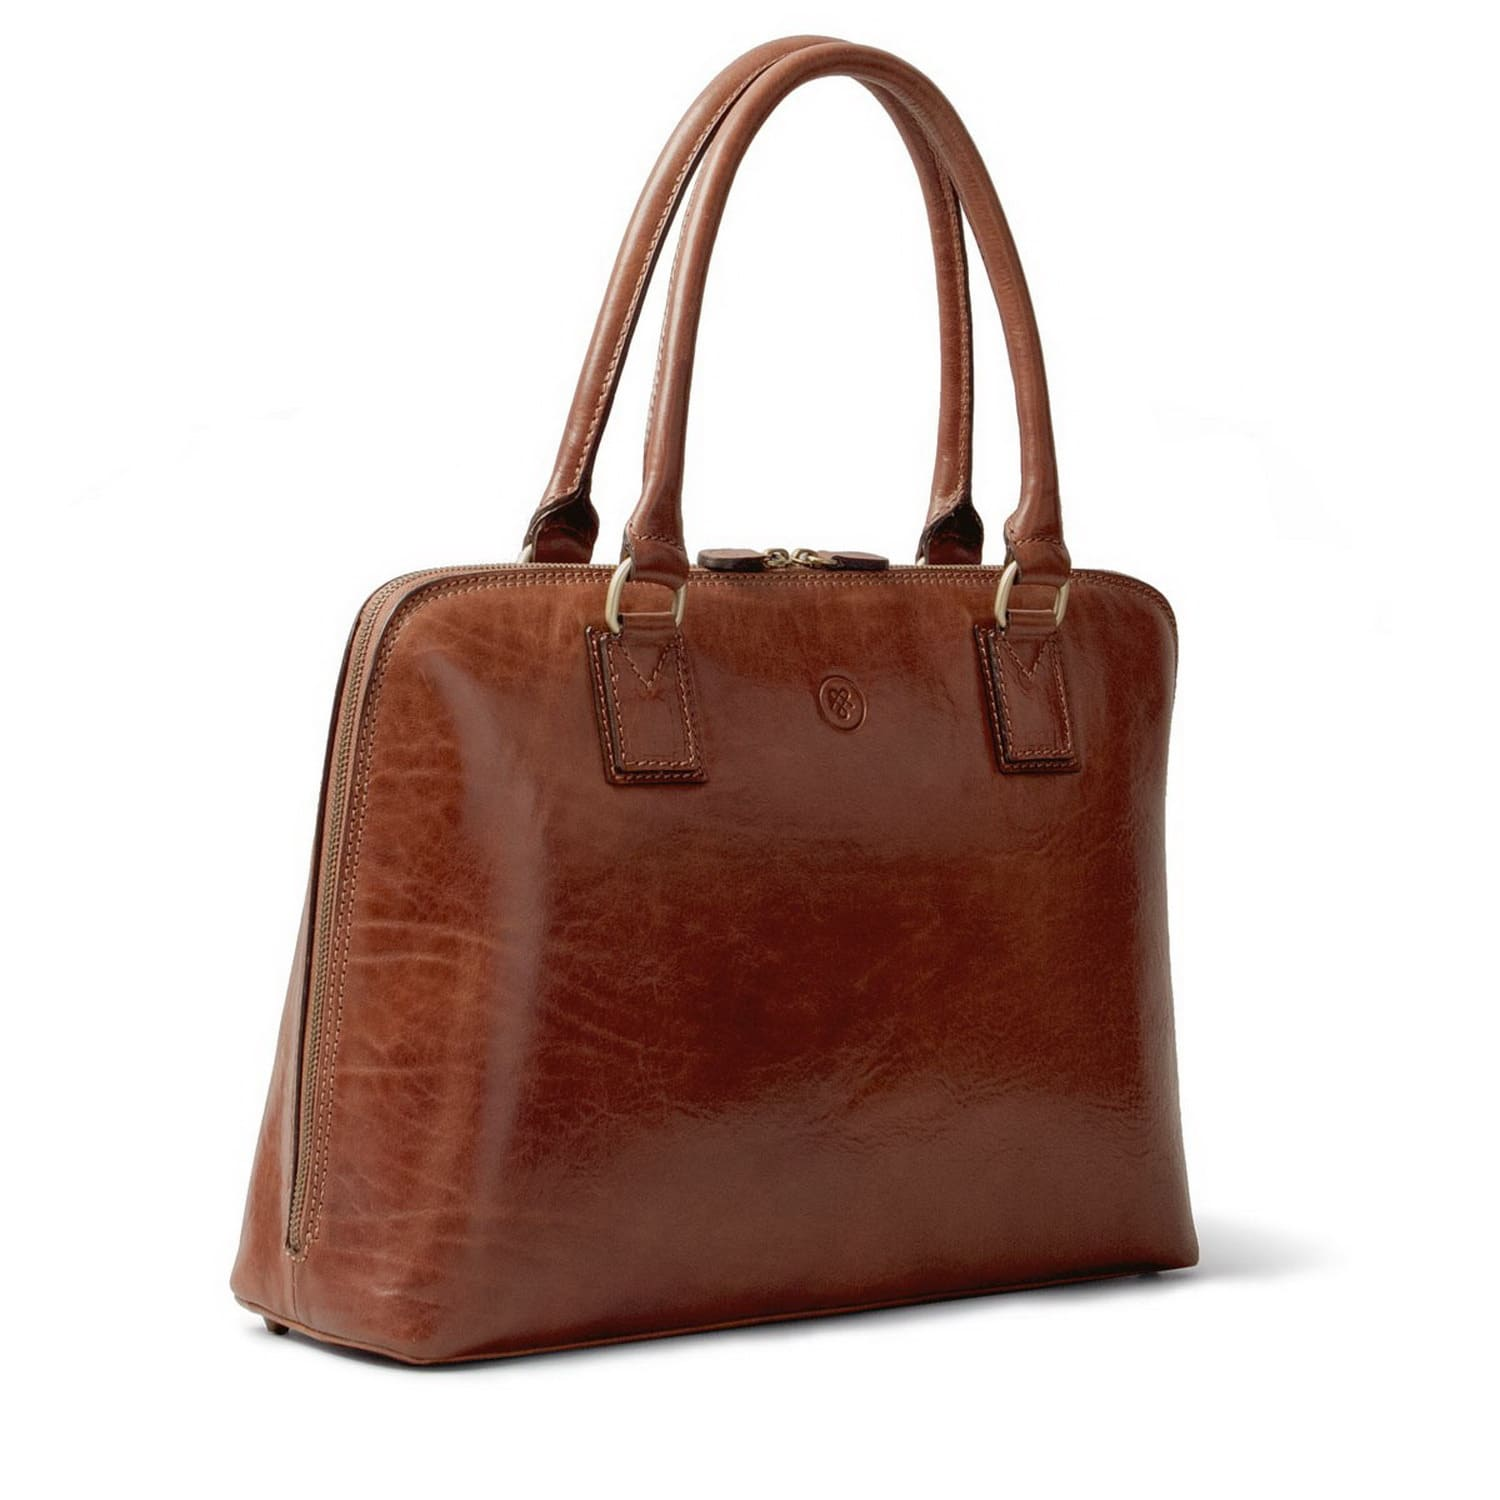 2eecf113e119 Luxury Italian Leather Women s Work Tote Bag Fiorella Chestnut Tan ...